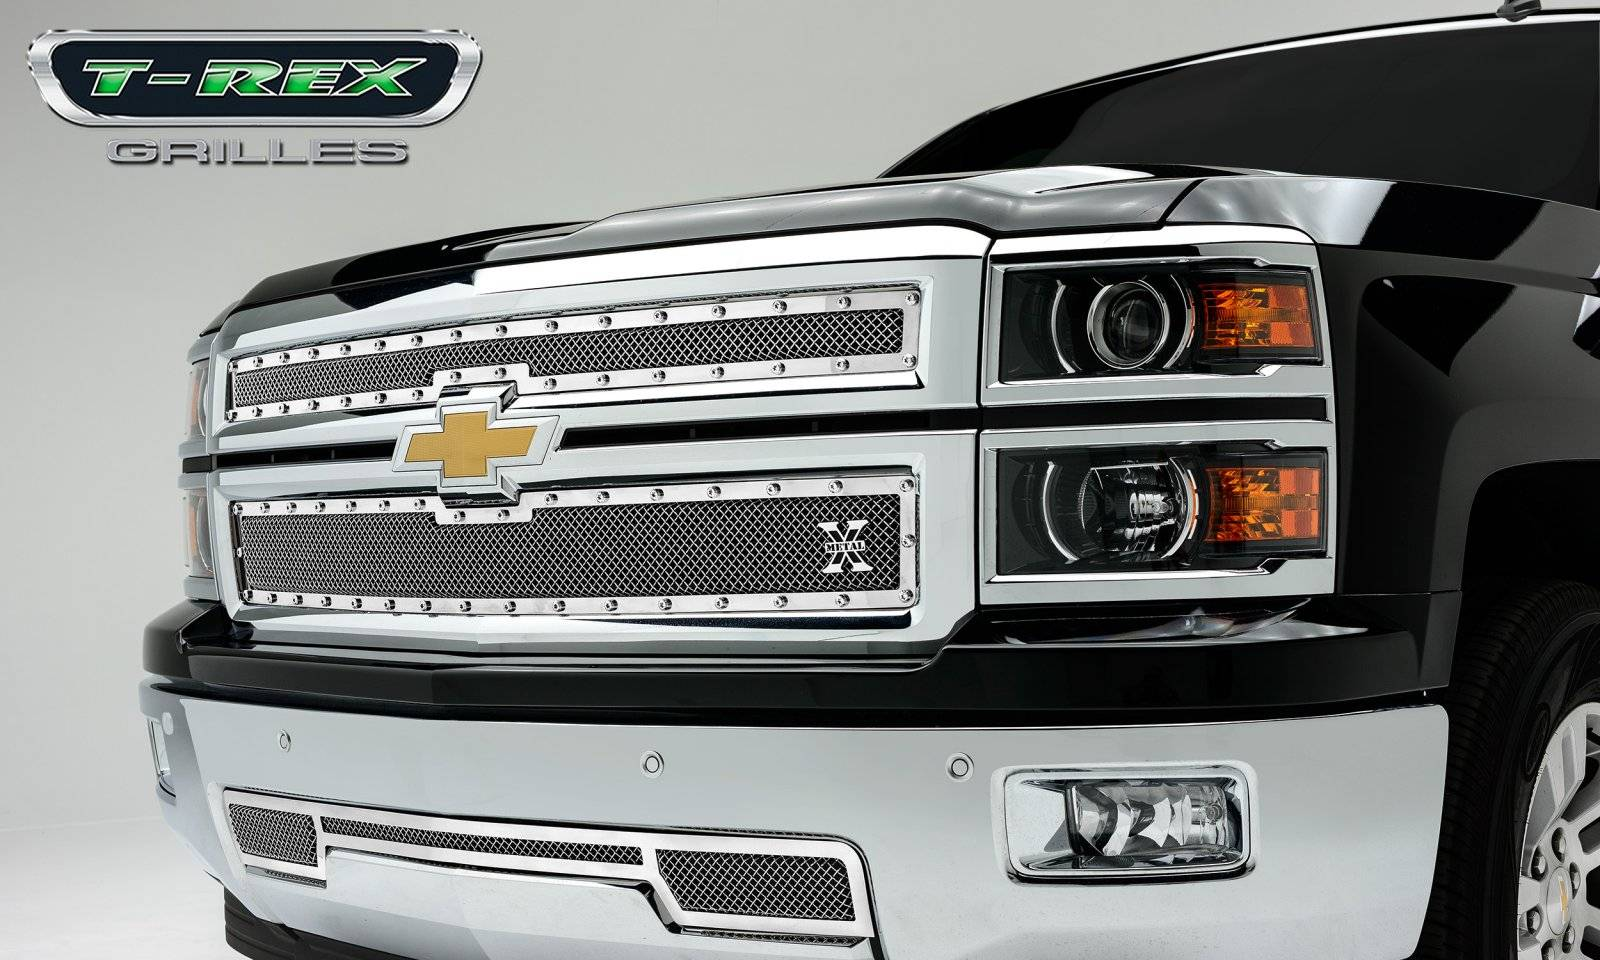 Chevrolet Silverado X-Metal, Formed Mesh Grille, Main, Replacement, 2 Pc's, Polished Stainless Steel - Pt # 6711210